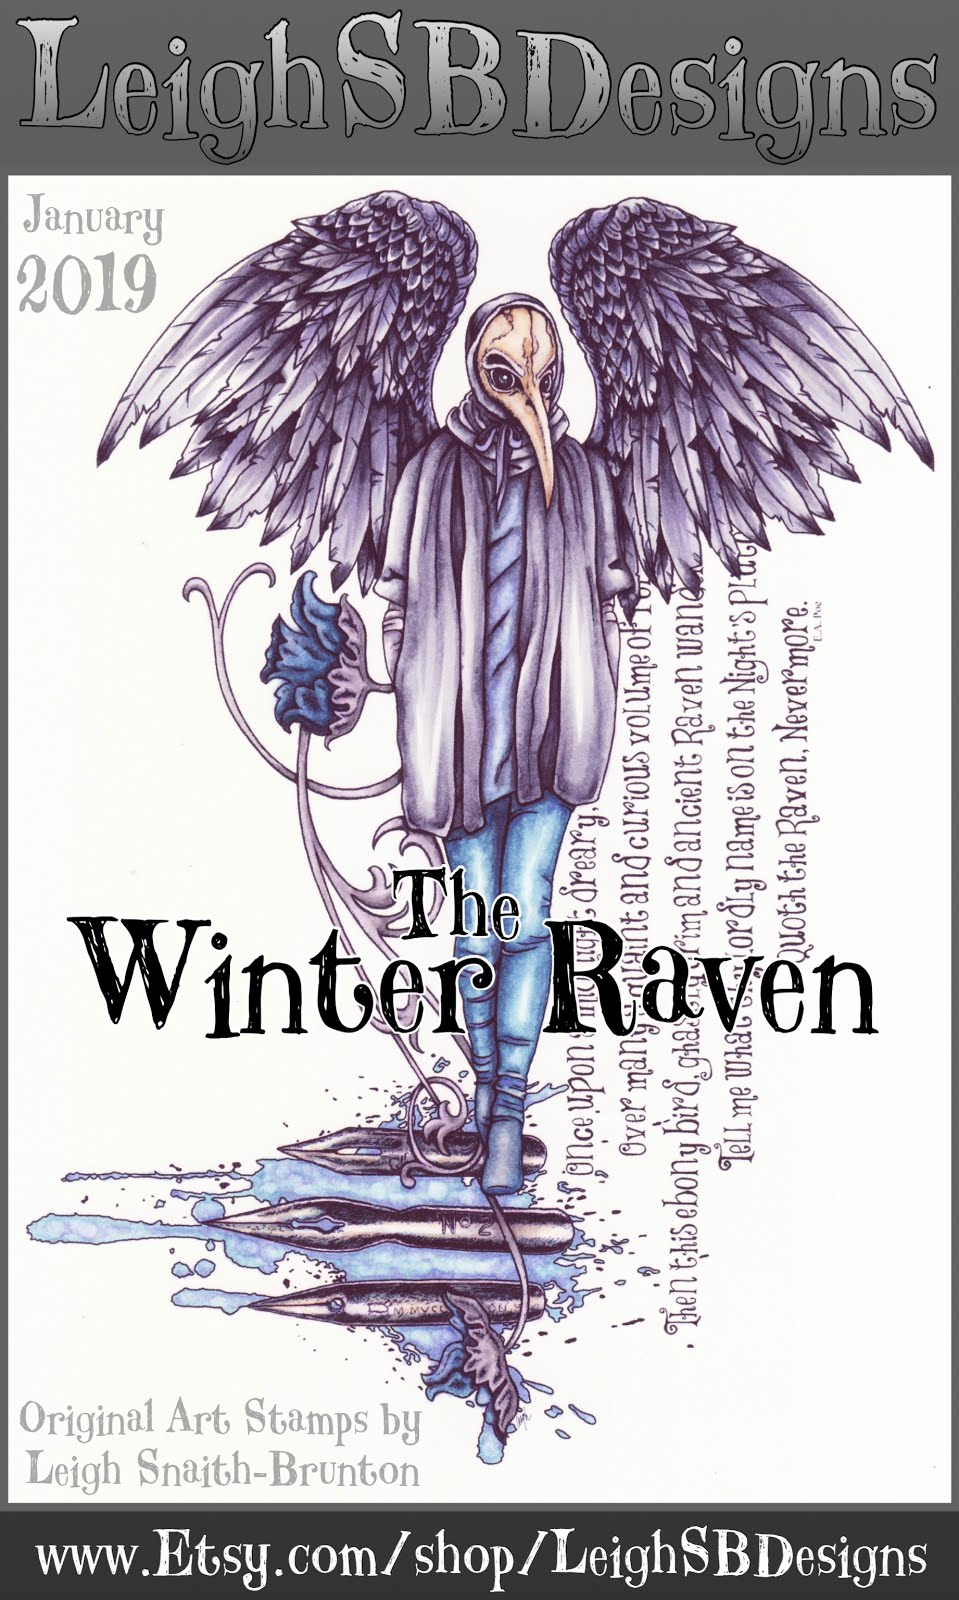 The Winter Raven!